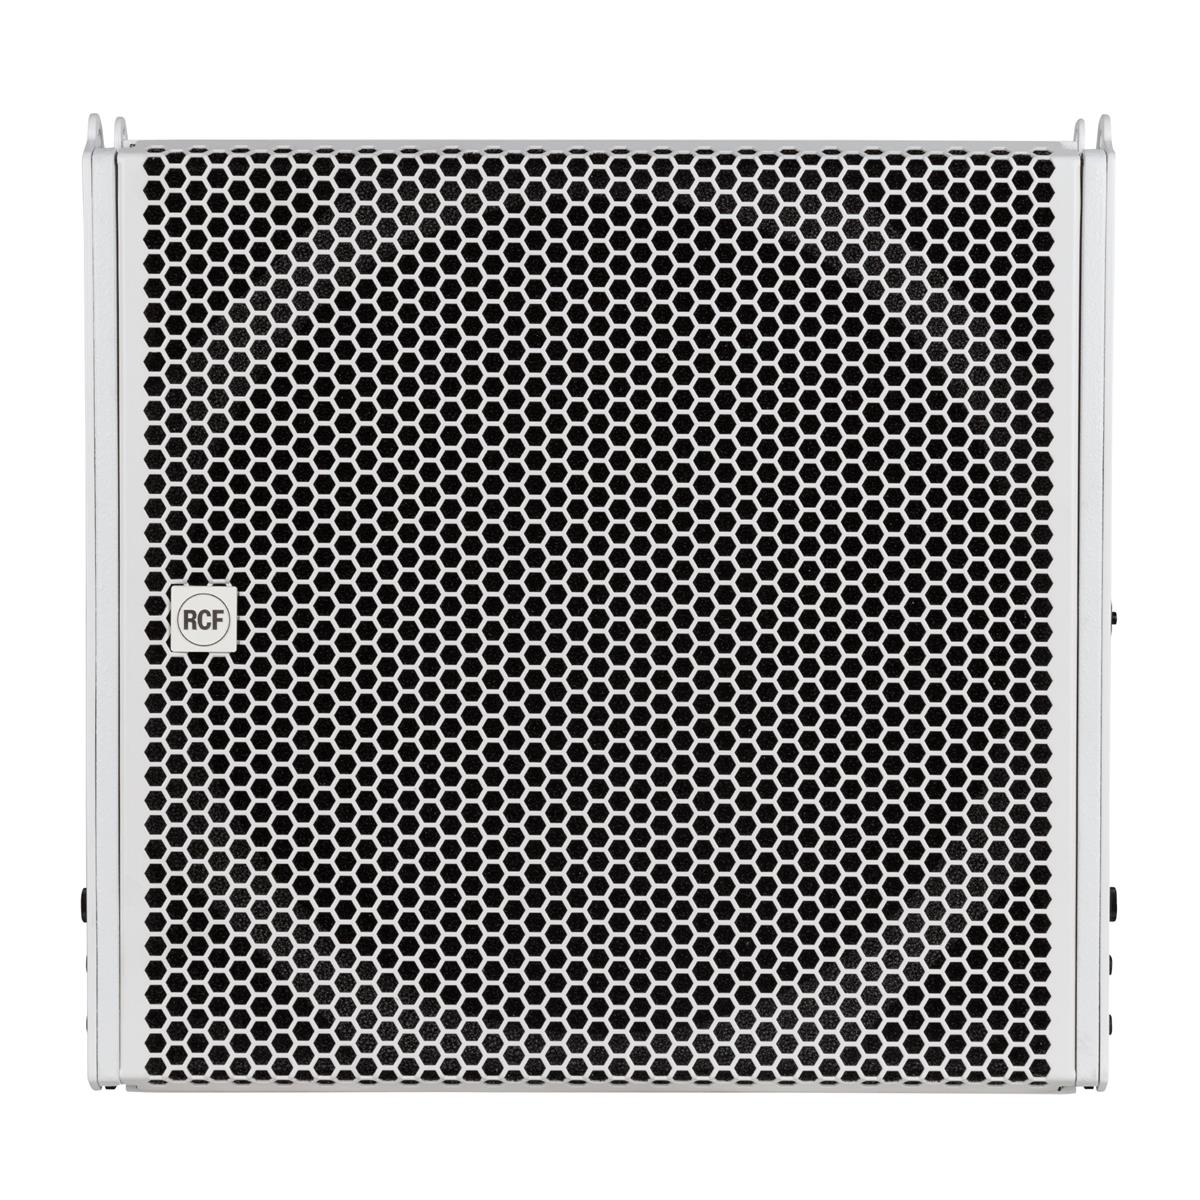 RCF Active line array subwoofer for HDL26, 15in, 2200 W, whi